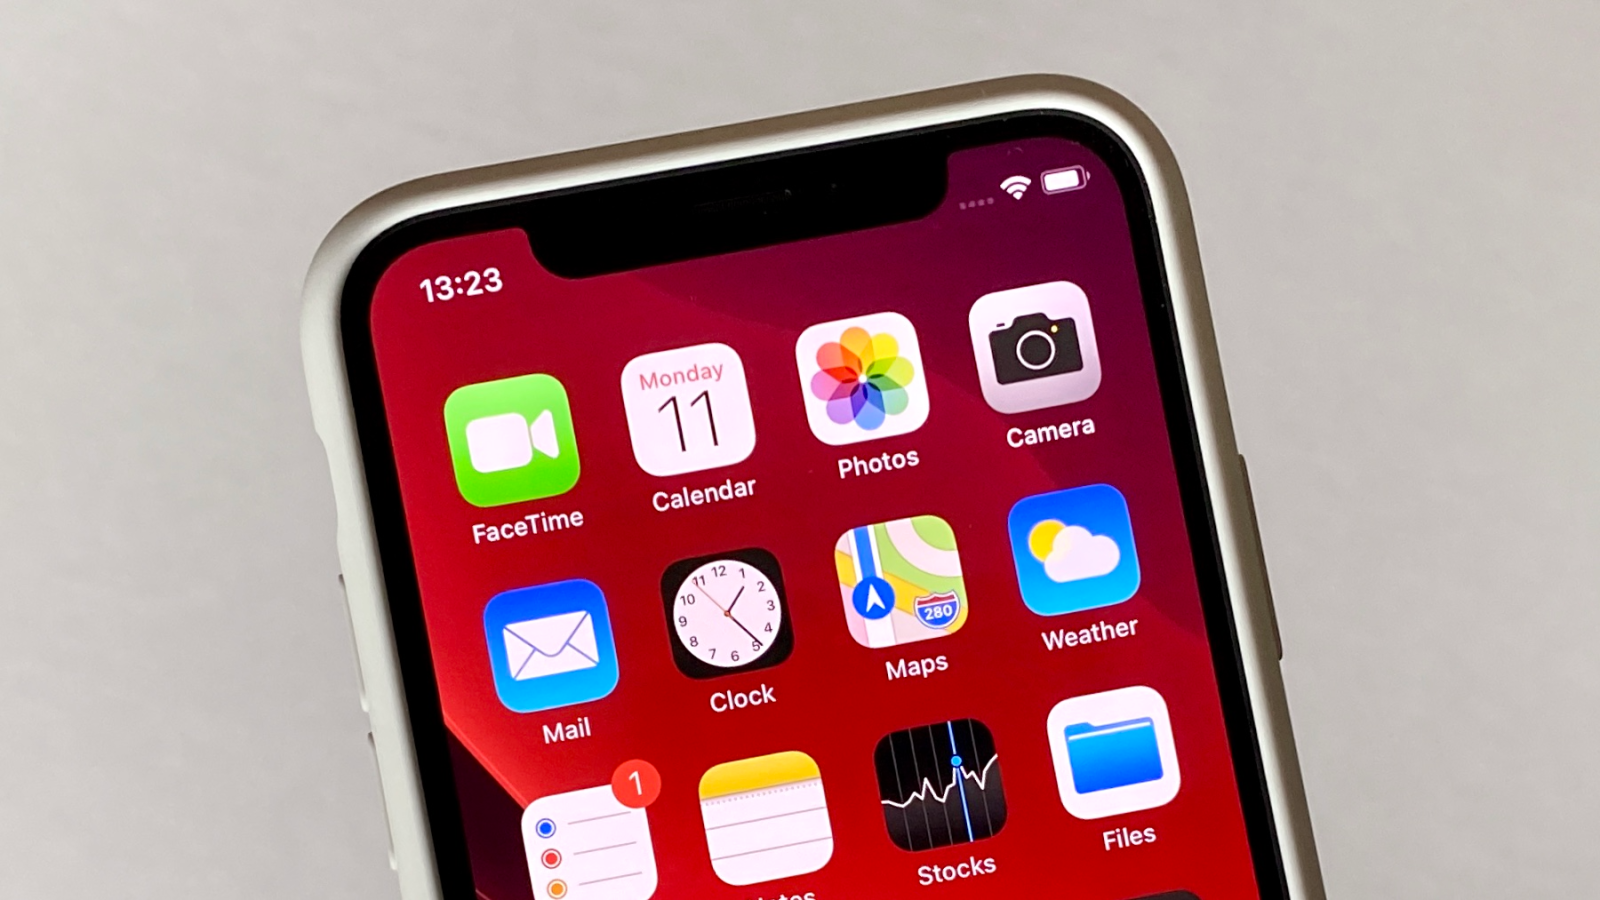 Checkra1n is the first public jailbreak tool compatible with iOS 13